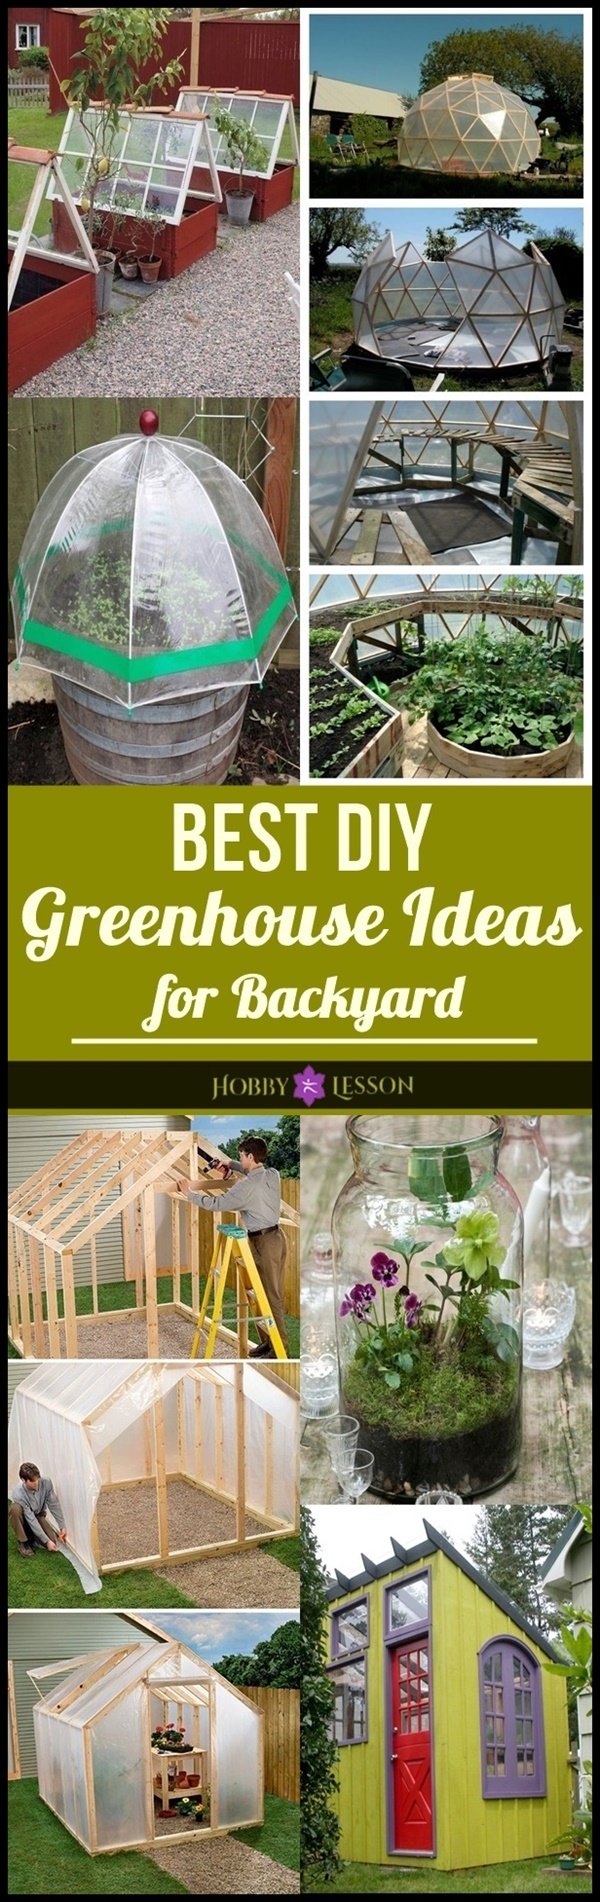 Best DIY Greenhouse Ideas for Backyard